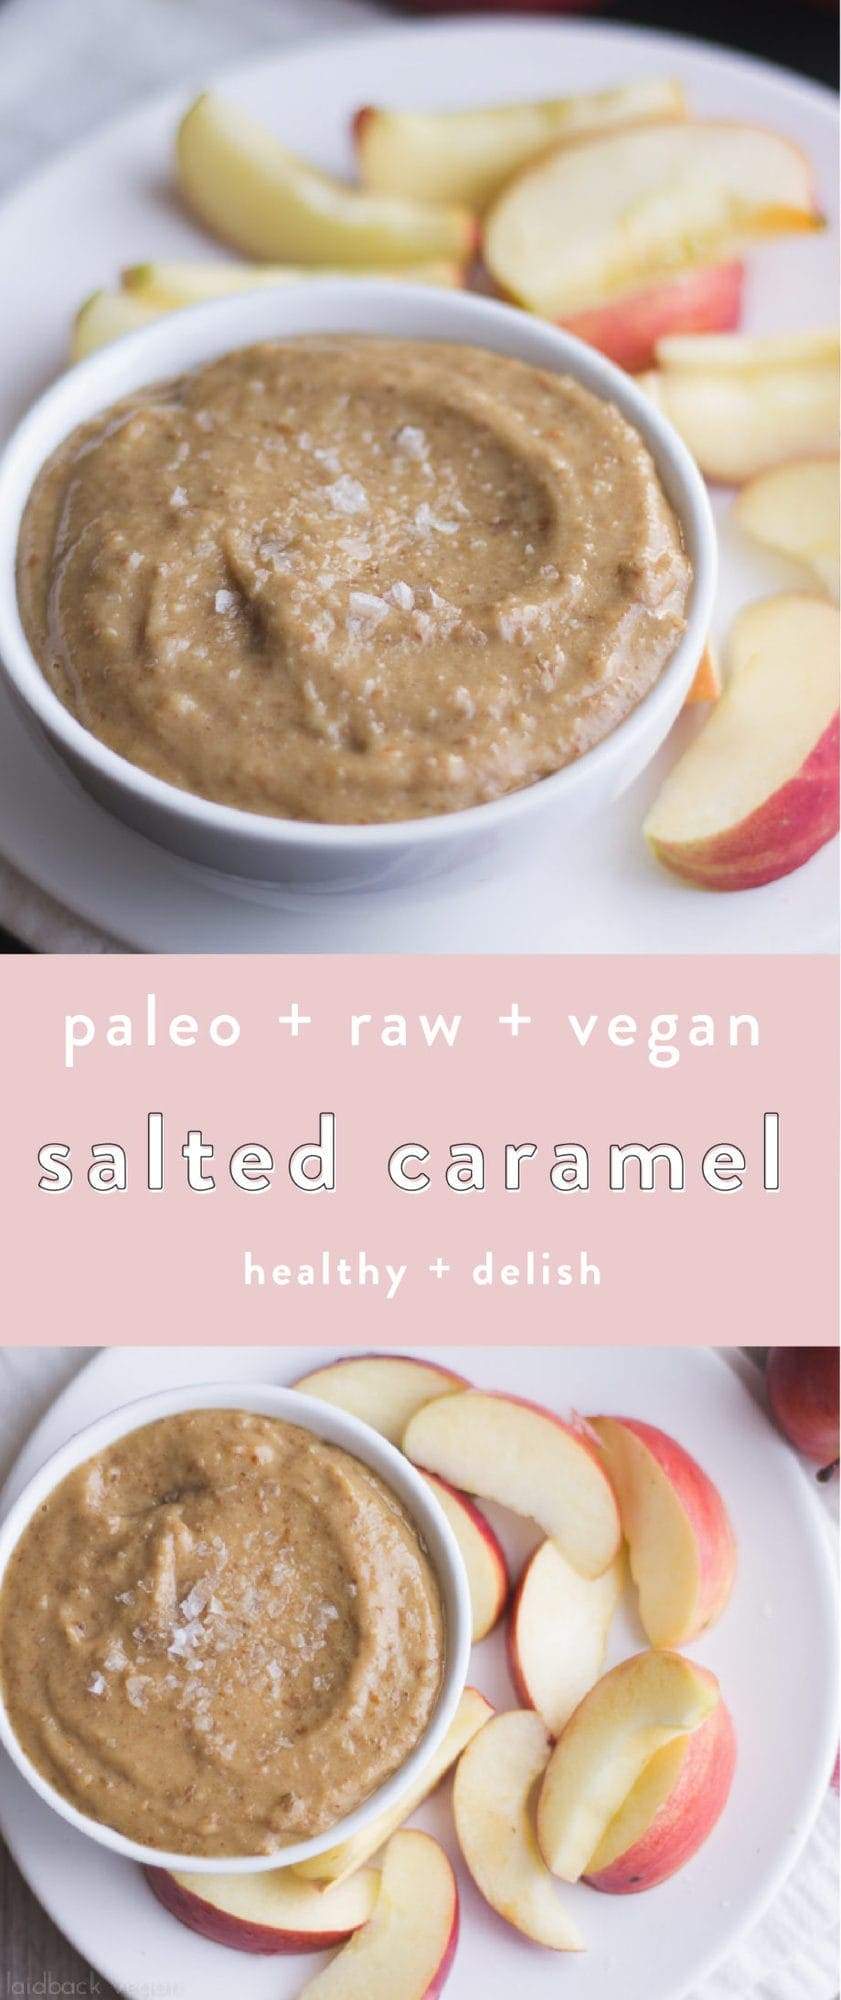 This paleo salted caramel is vegan, sugar free, and gluten free, but so delicious. It's quick and easy, and I promise you'll start putting it on everything. Made from only healthy ingredients, this vegan salted caramel is bound to become a staple in your home!